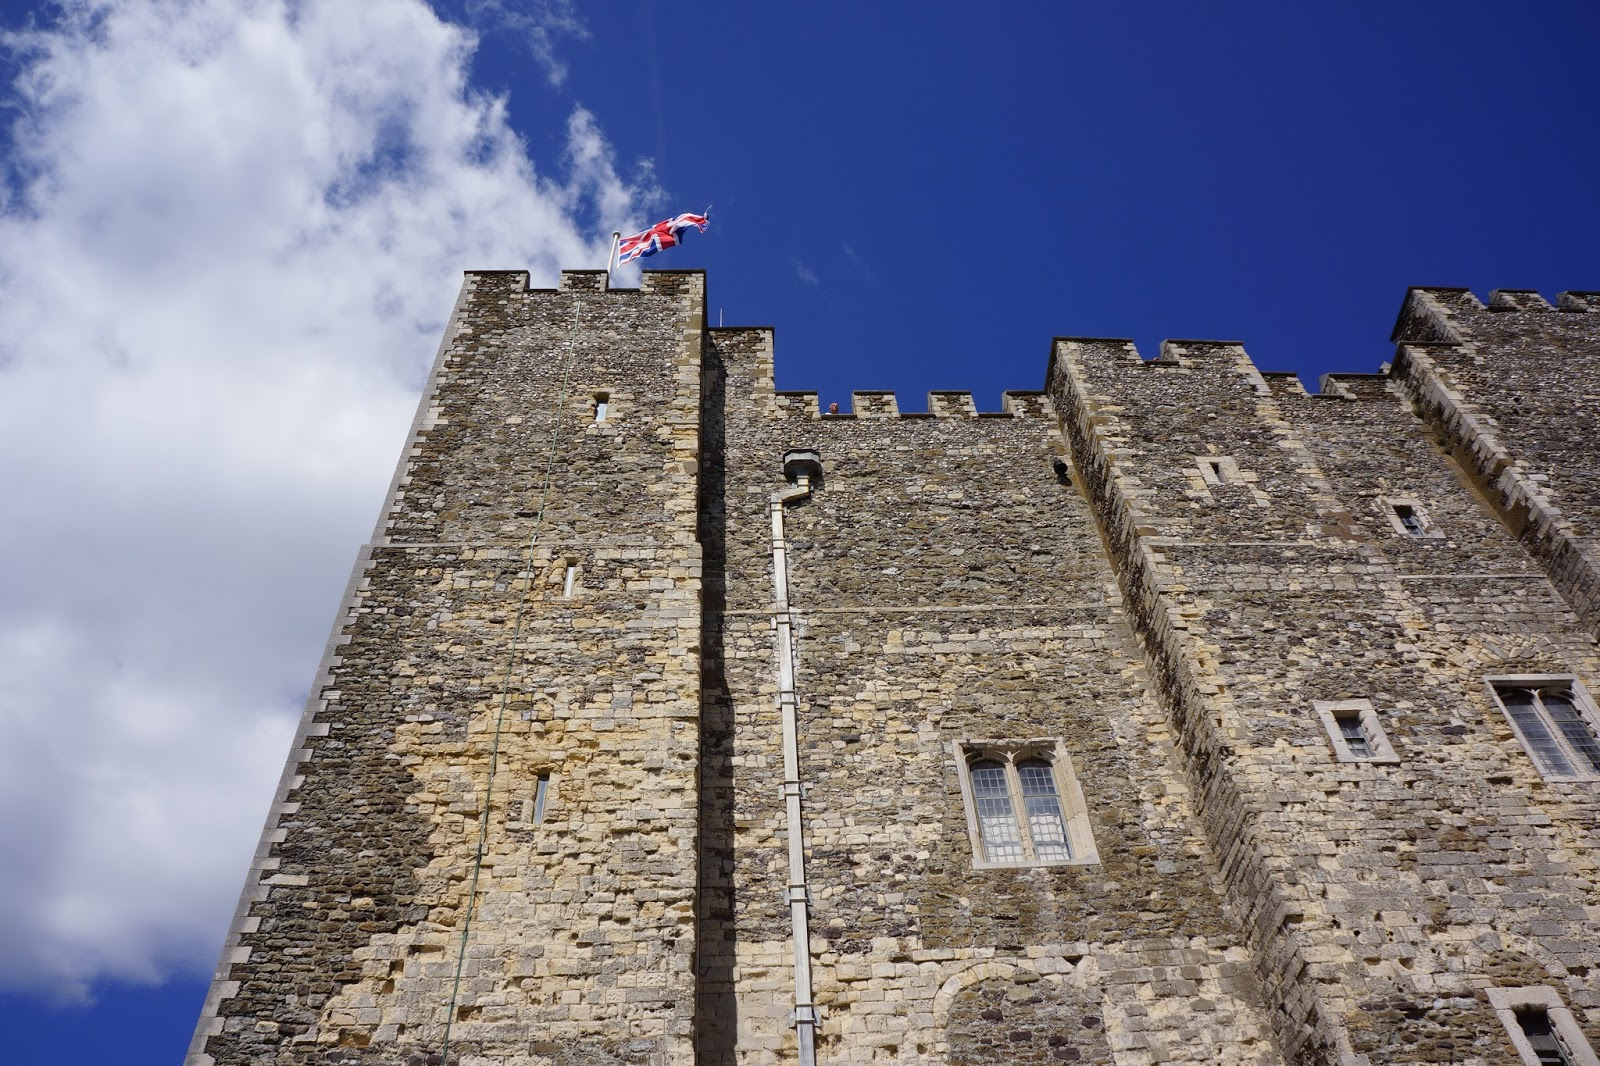 dover castle tower seen from below